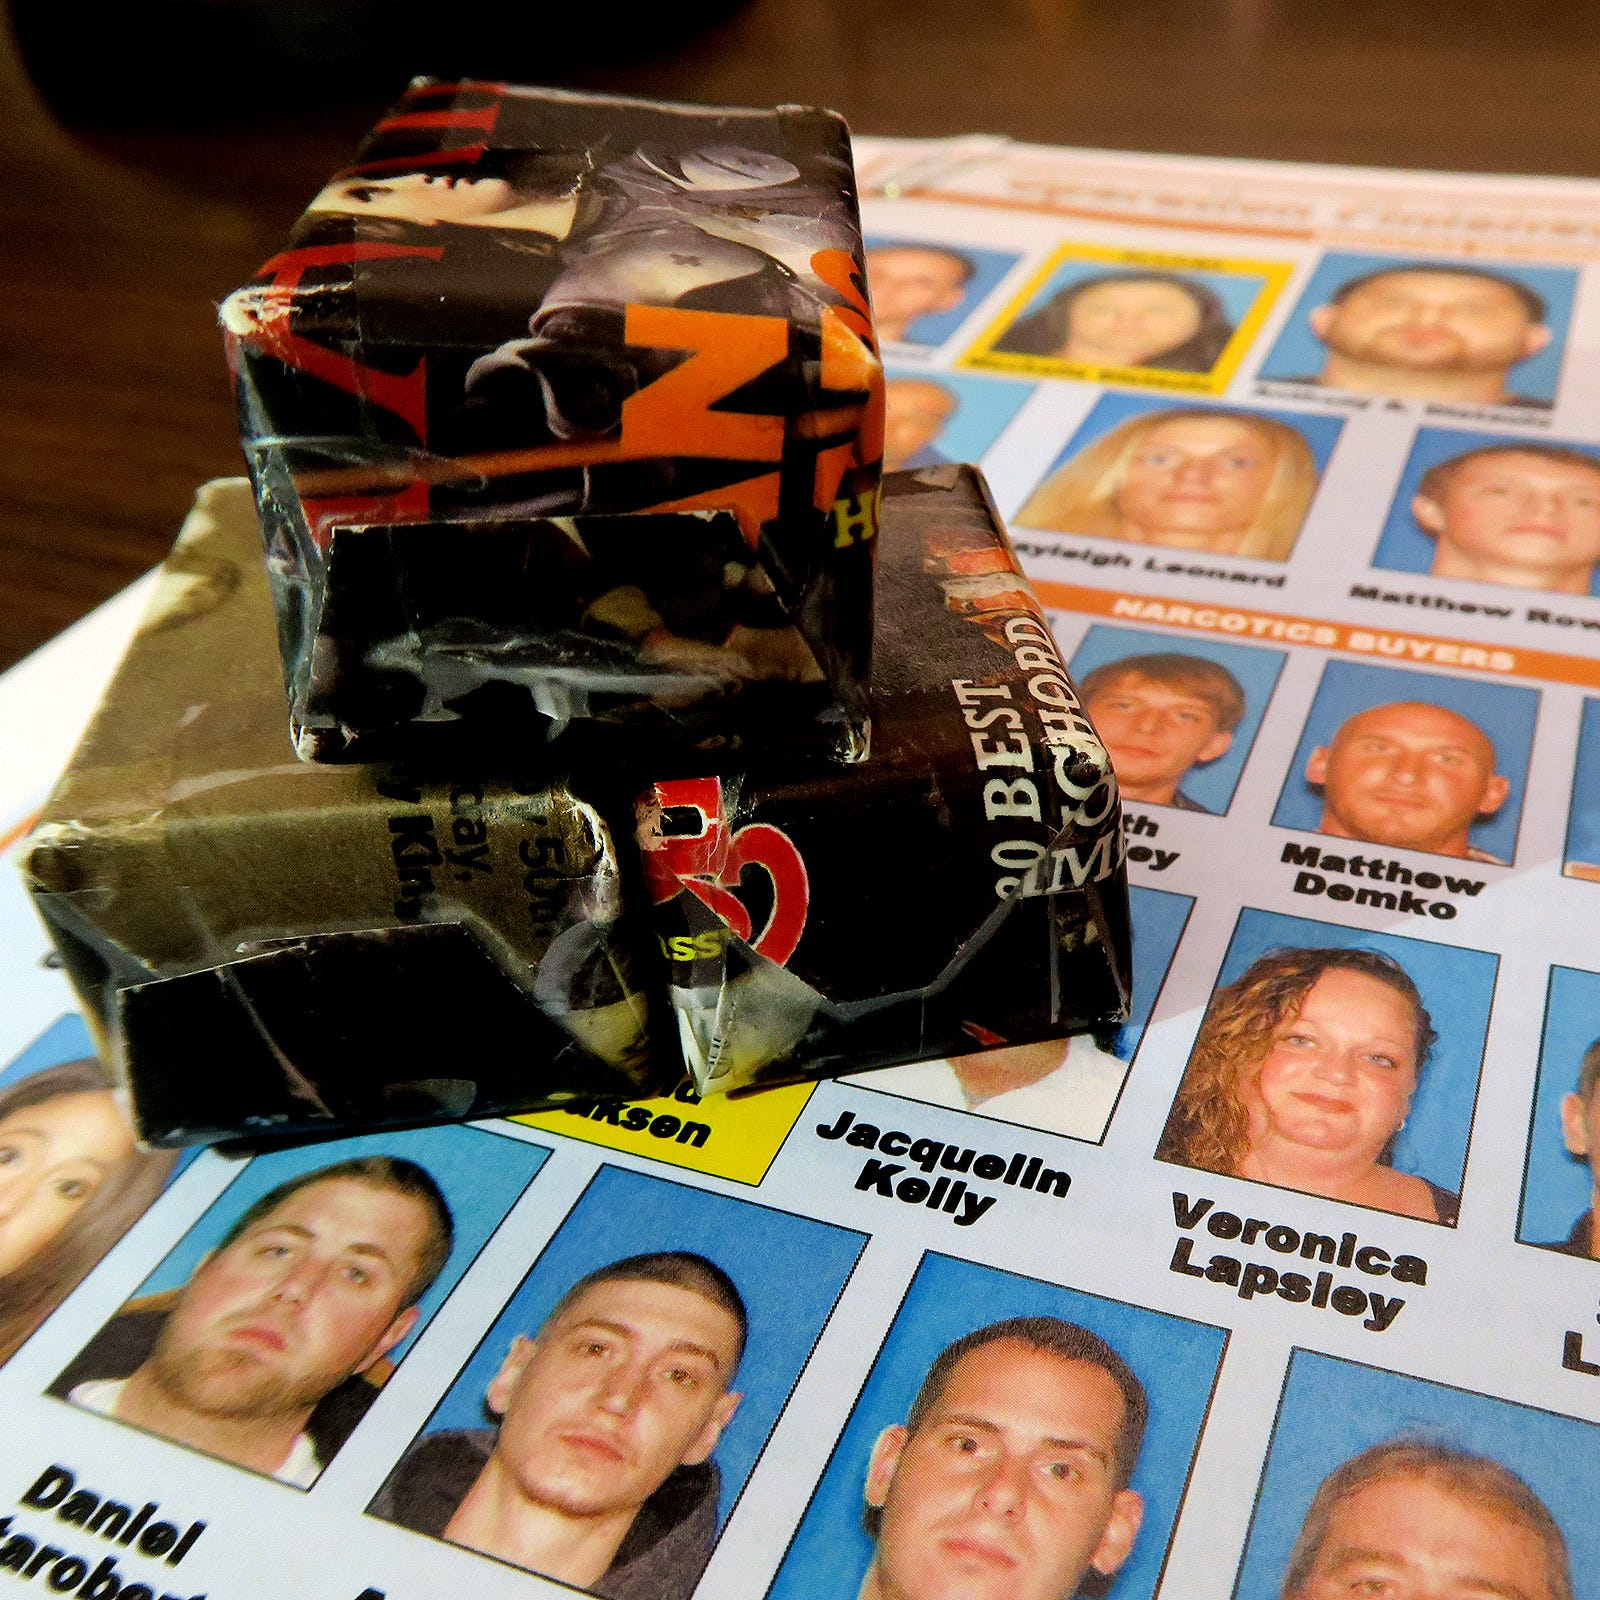 Drug busts in Monmouth County: A look at some of the biggest dealers police took down